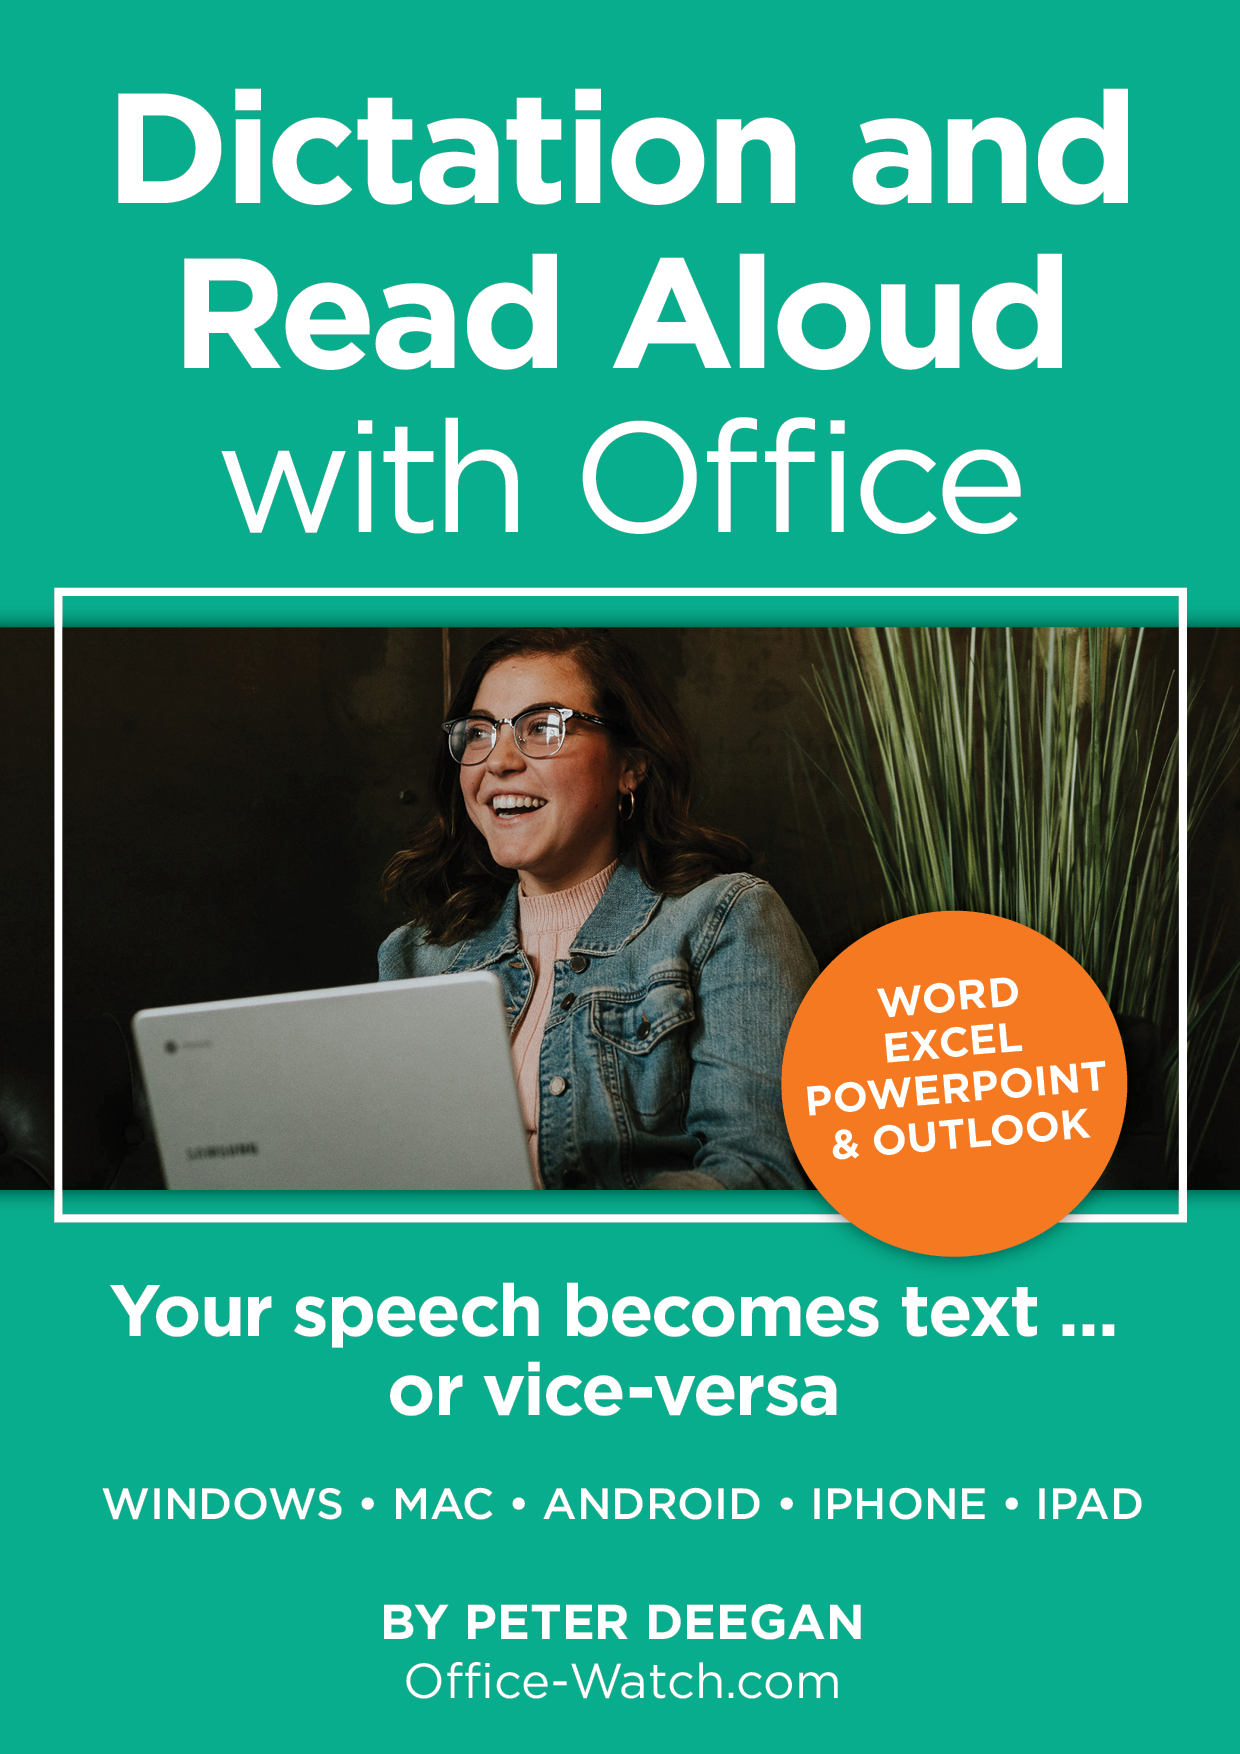 Dictation and Read Aloud with Office